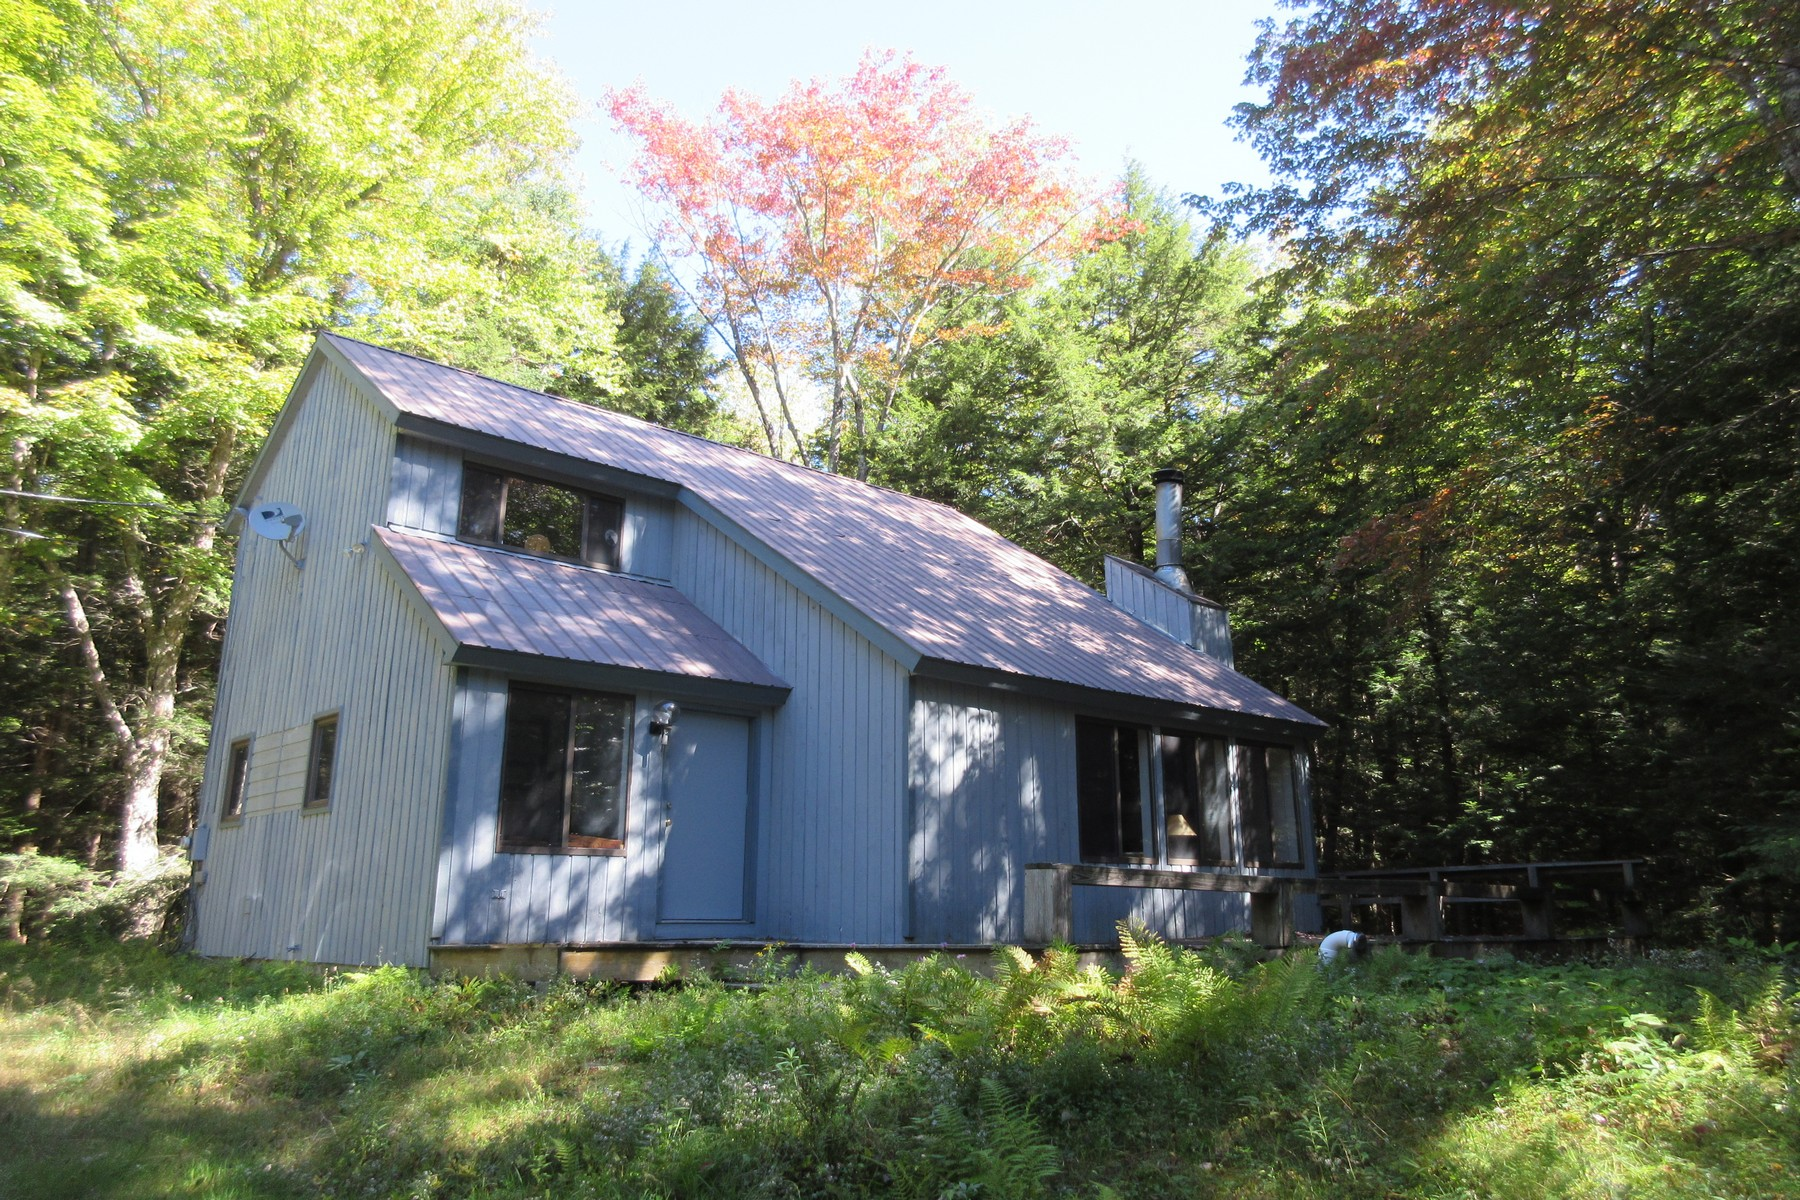 Single Family Home for Sale at 641 Sherwood Forest, Londonderry Londonderry, Vermont, 05148 United States